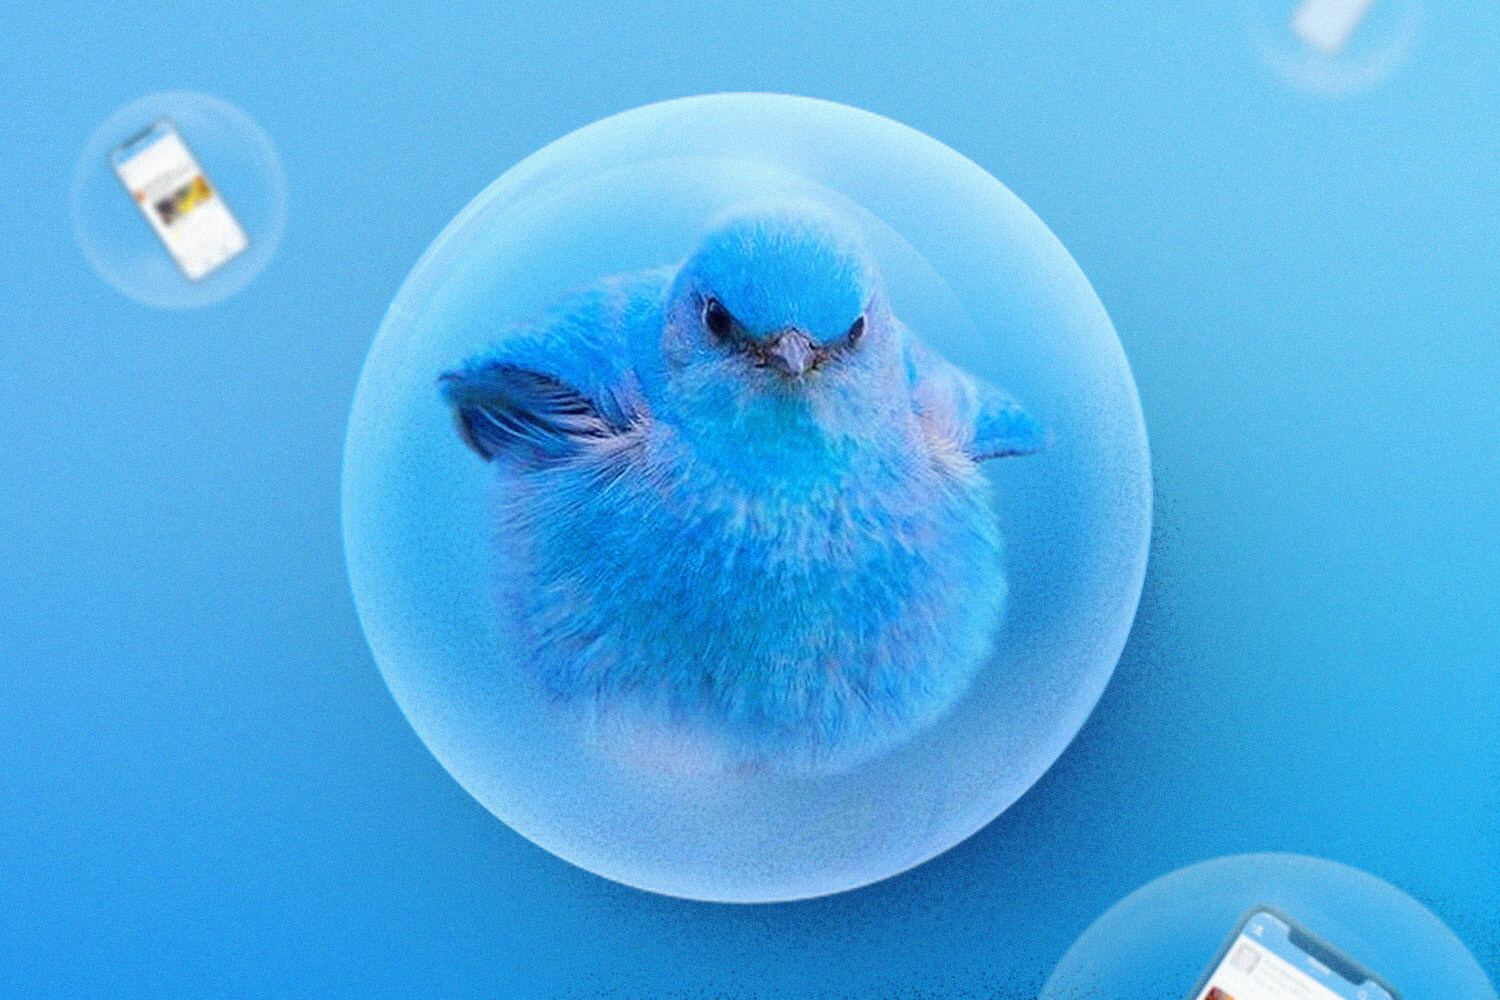 This report shows that Twitter attracts a different user than other platforms